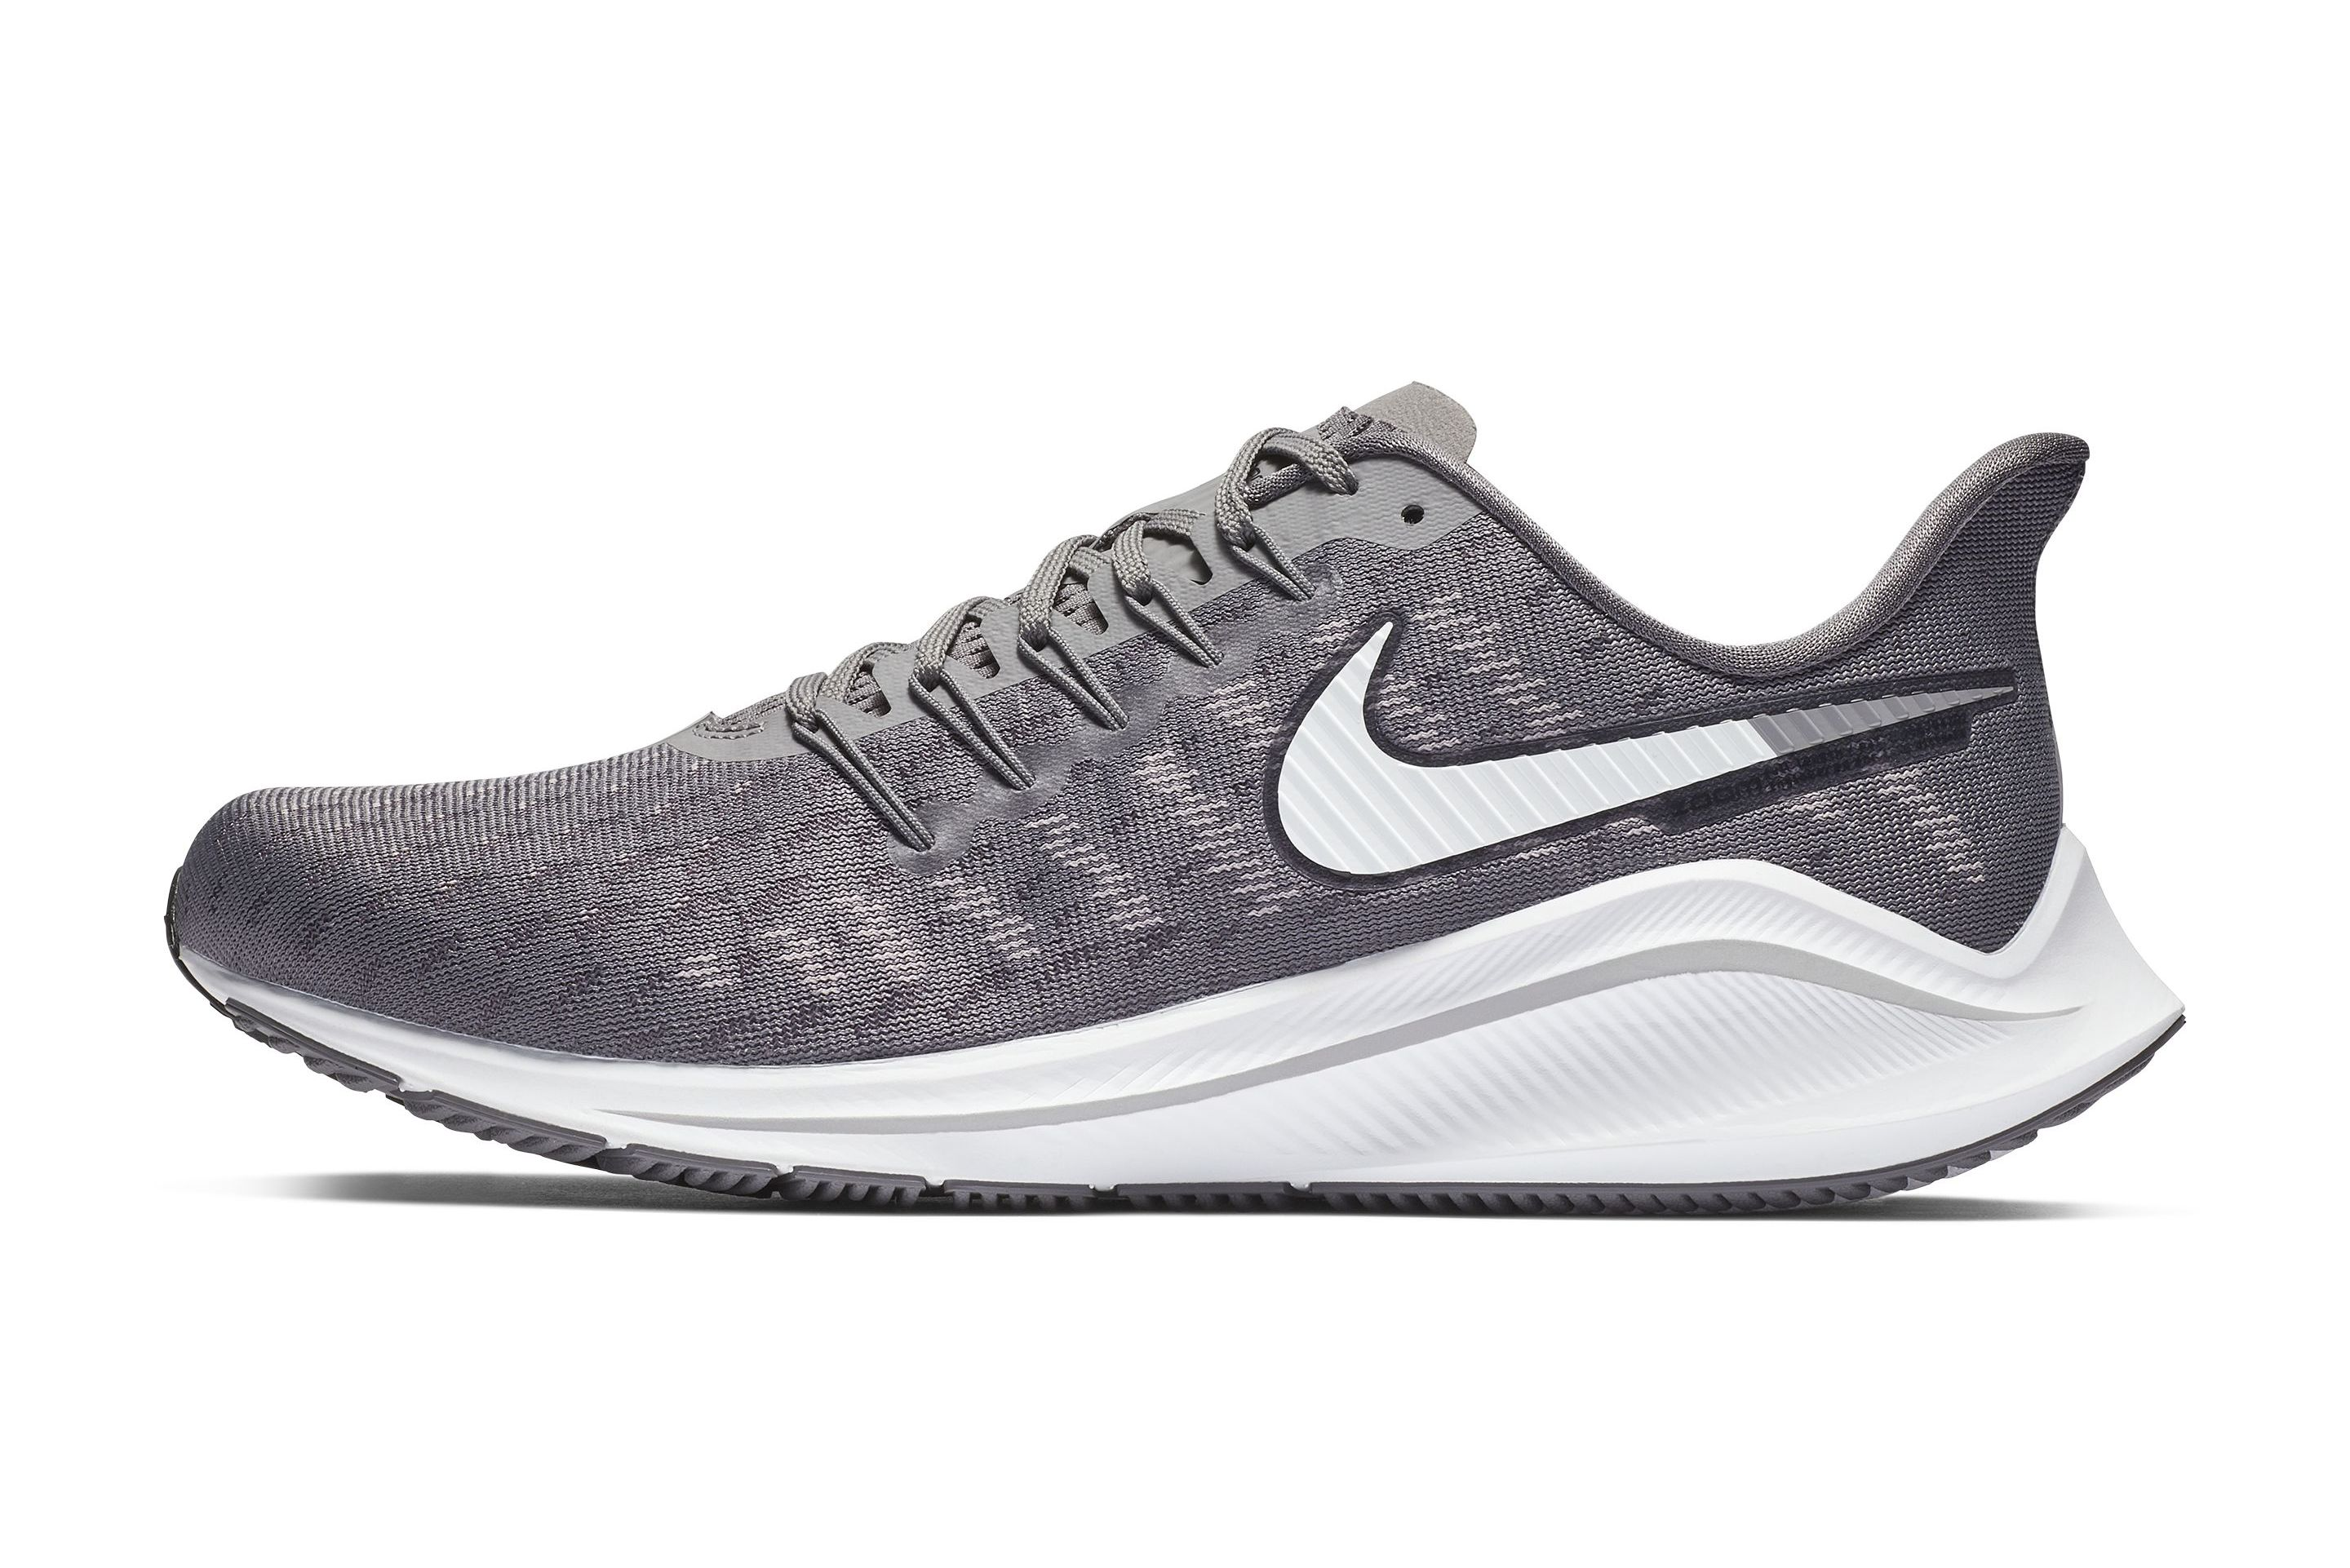 22efffc5f1aedb Best Nike Running Shoes | Nike Shoe Reviews 2019